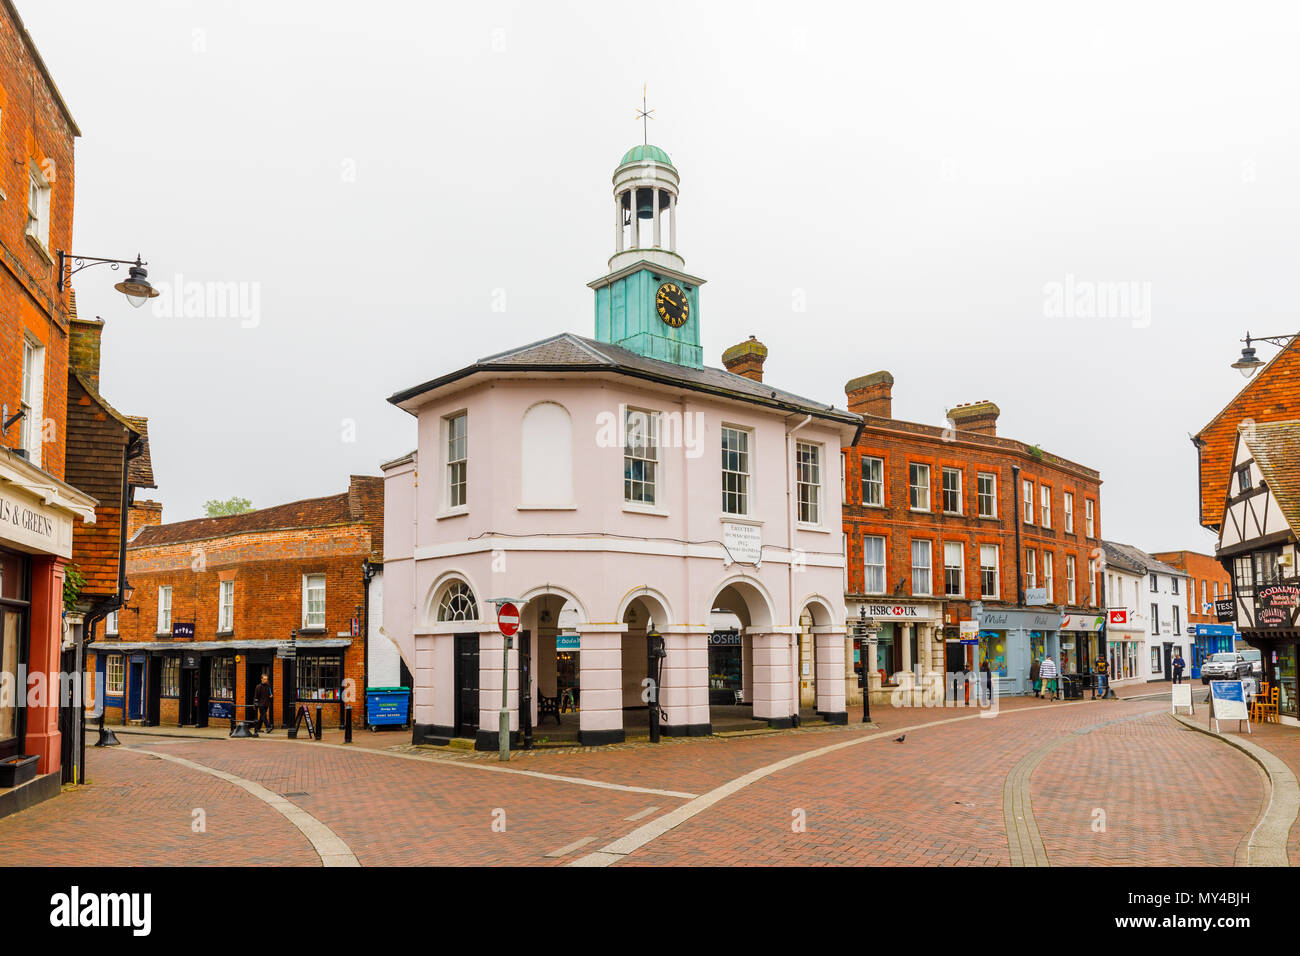 The Pepperpot, former town hall, Godalming, a small historic market town near Guildford, Surrey, southeast England, UK - Stock Image